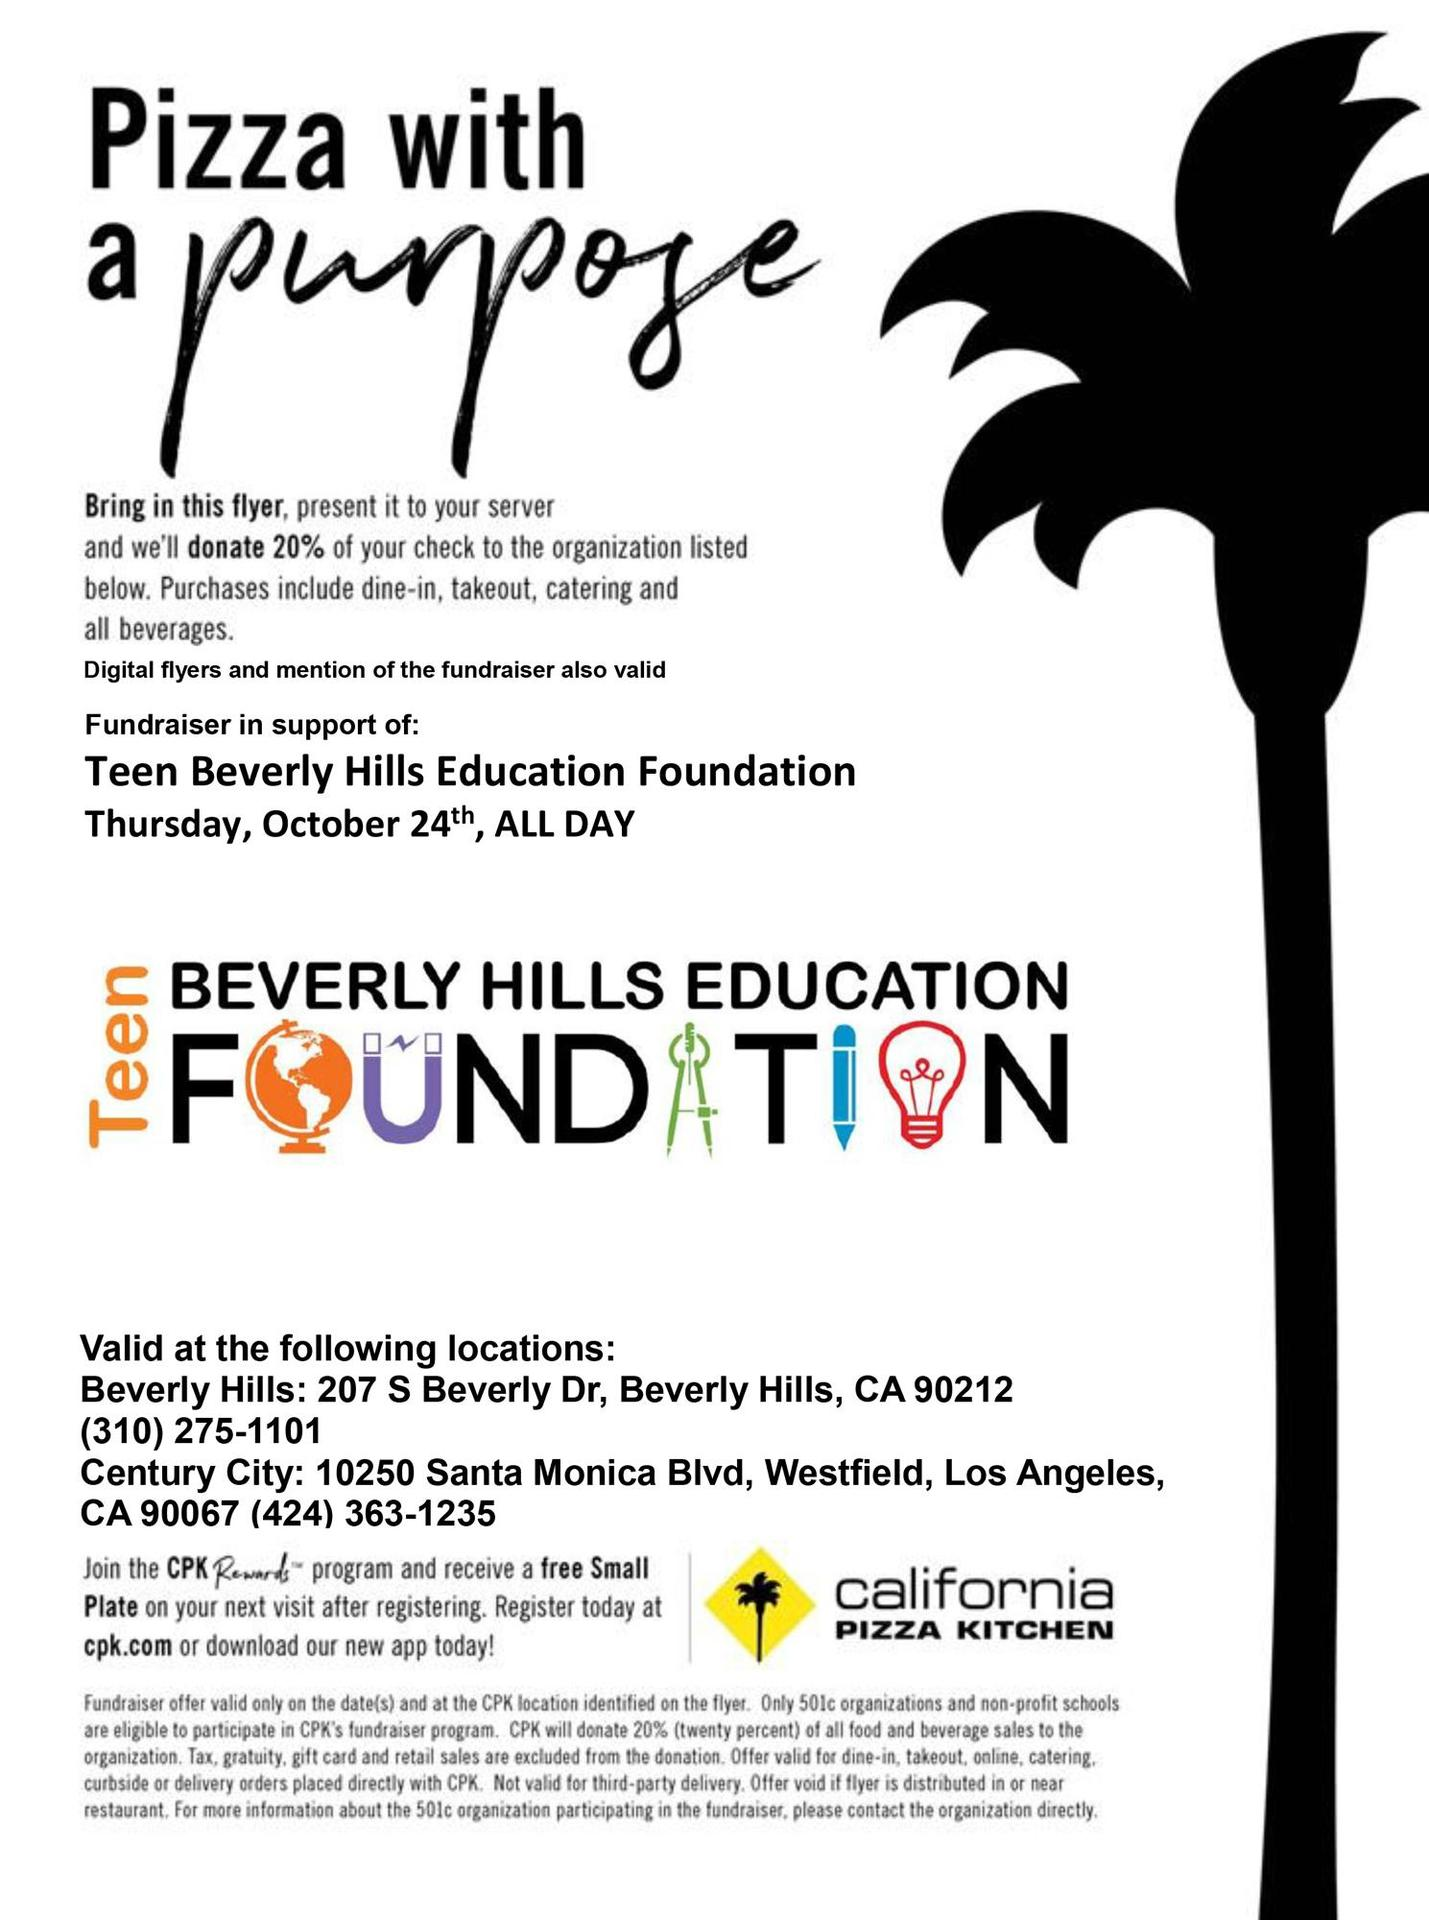 teen bhef cpk fundraiser October 24 beverly hills and century city locations